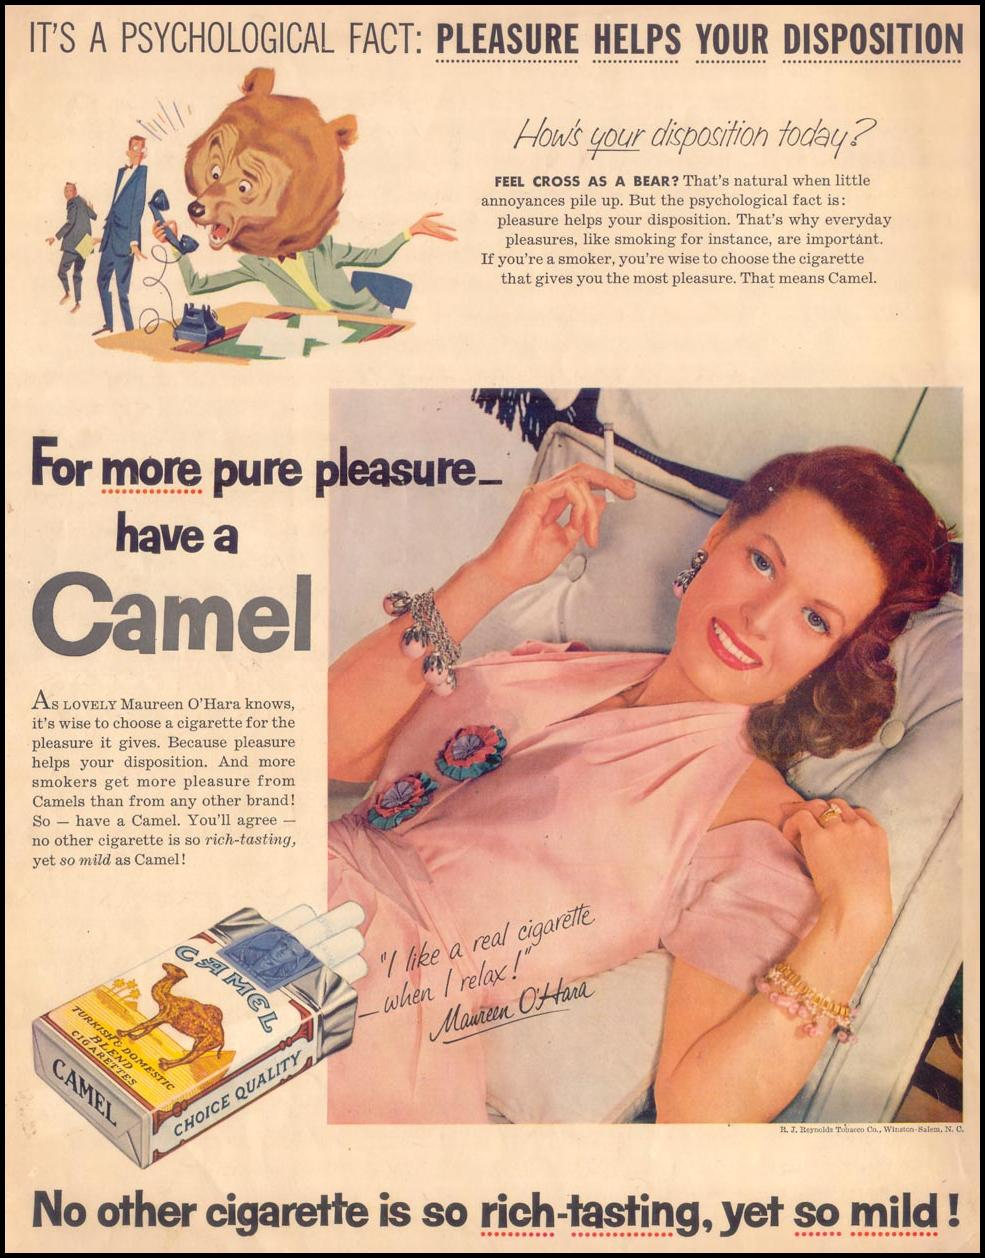 CAMEL CIGARETTES SATURDAY EVENING POST 07/23/1955 BACK COVER